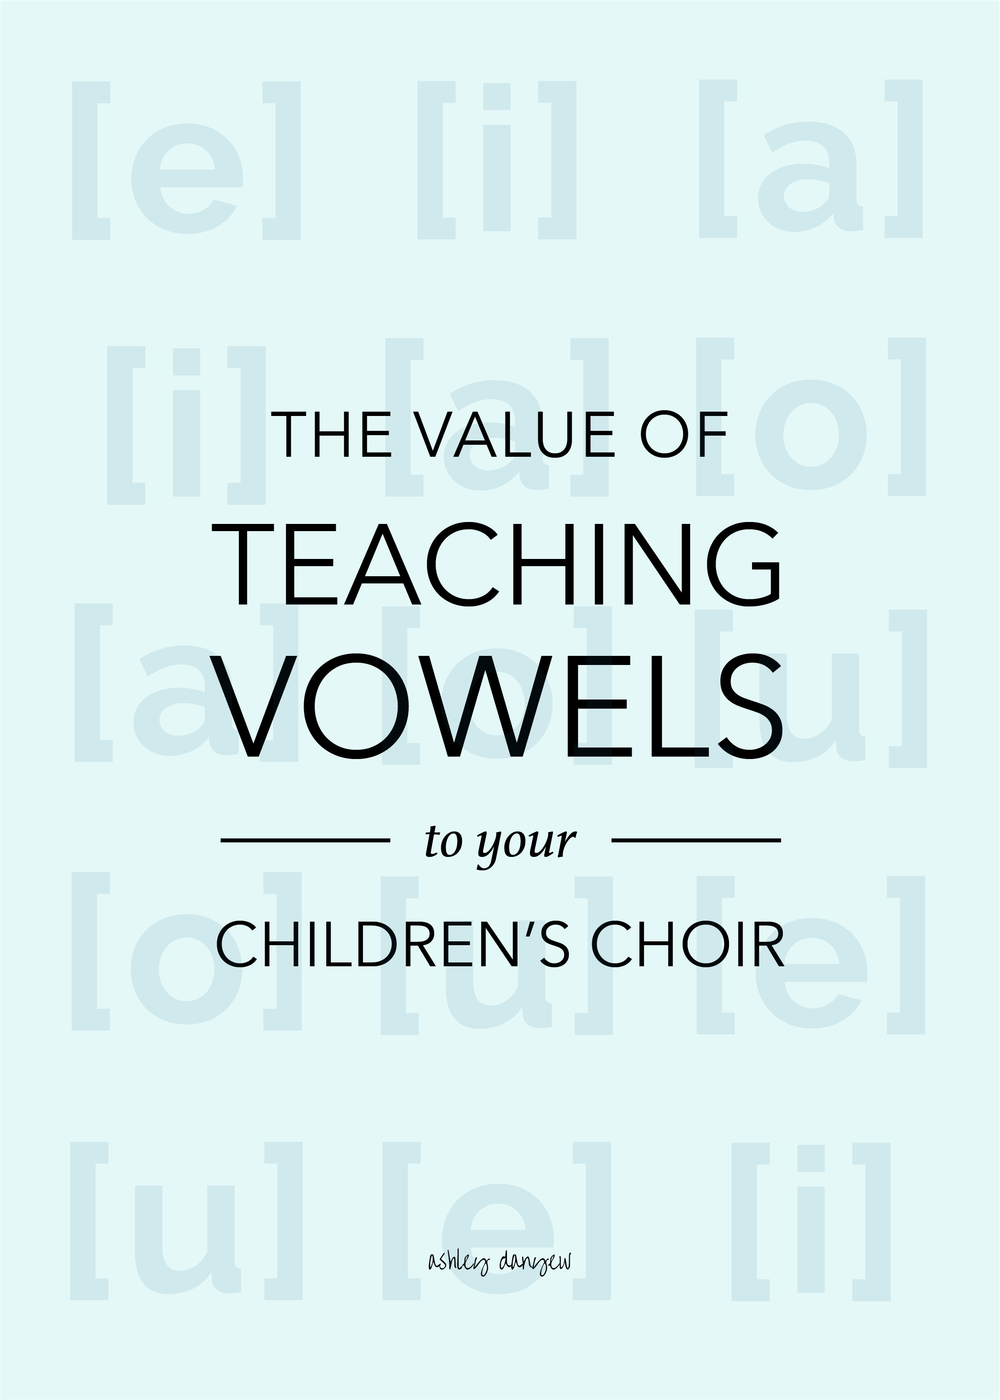 The Value of Teaching Vowels to Your Children's Choir-28.png